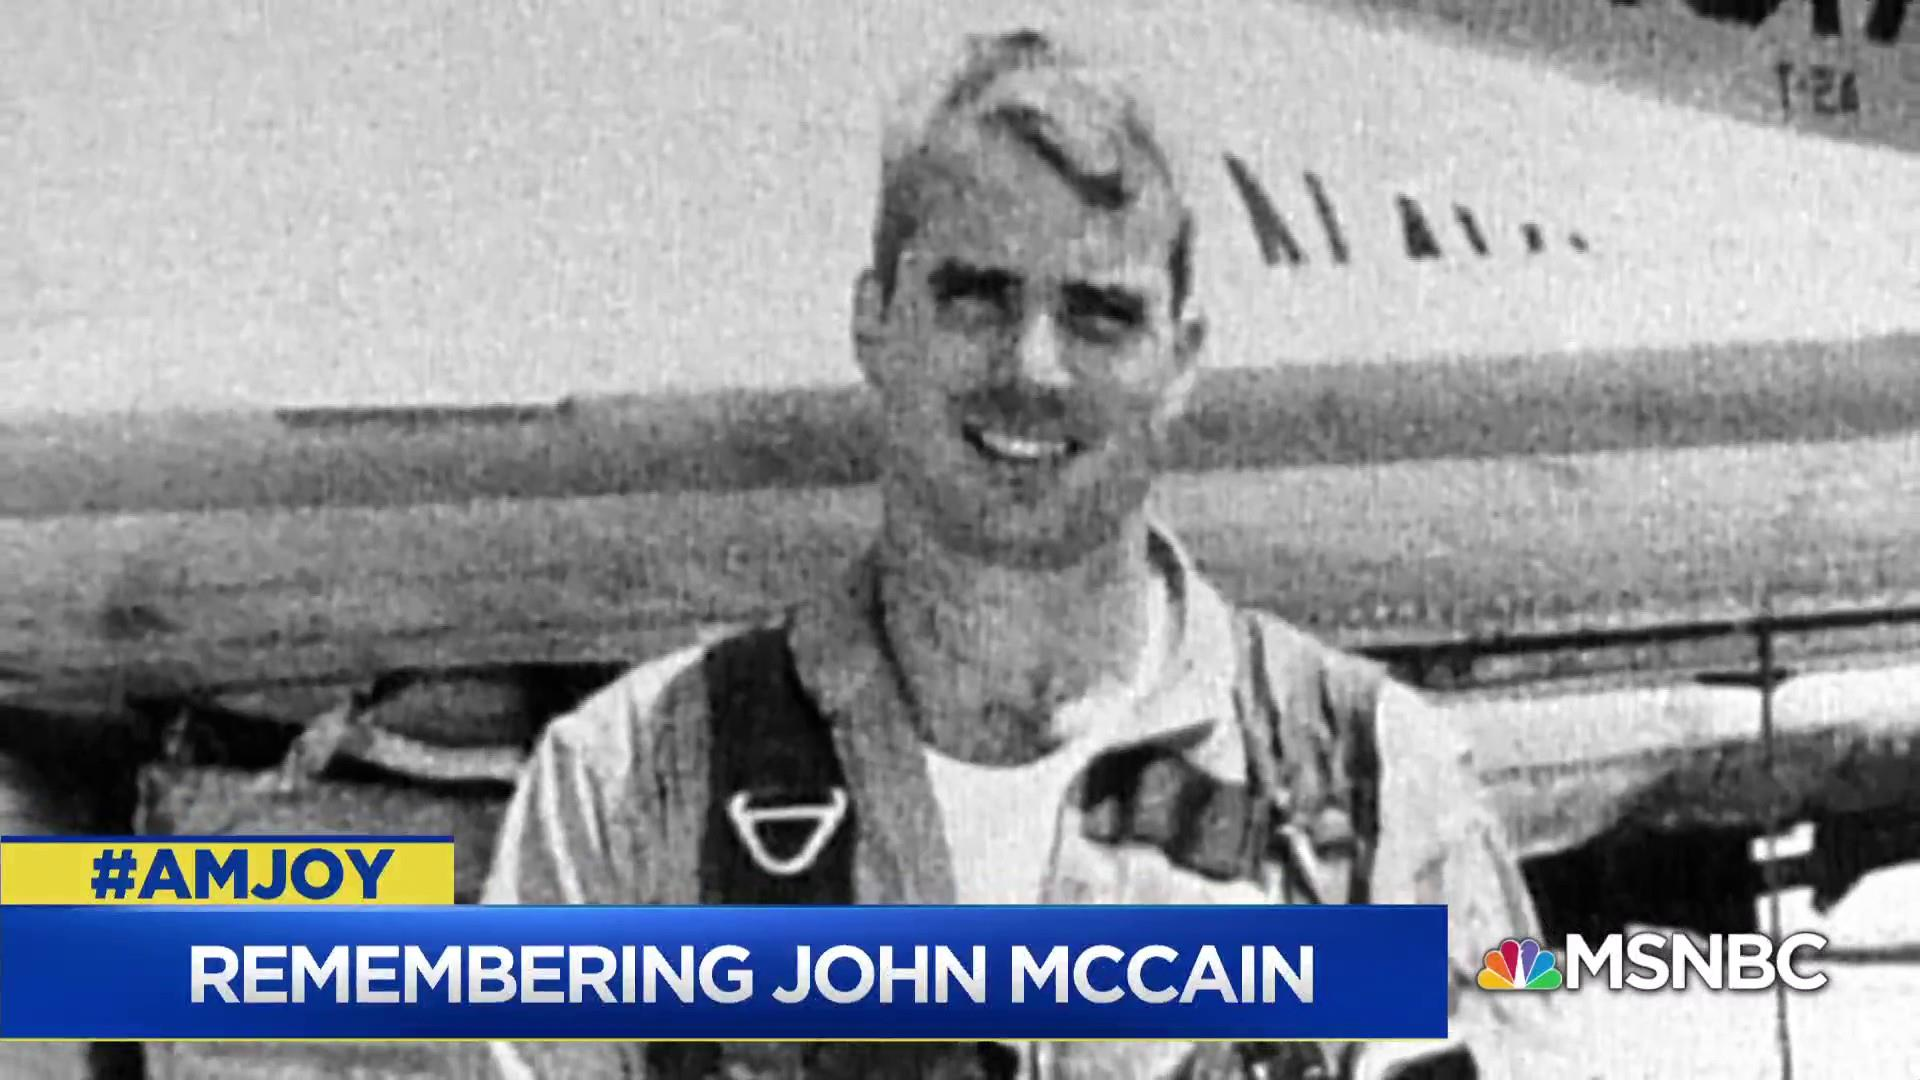 Malcolm Nance: John McCain was a giant, not just in U.S. Navy